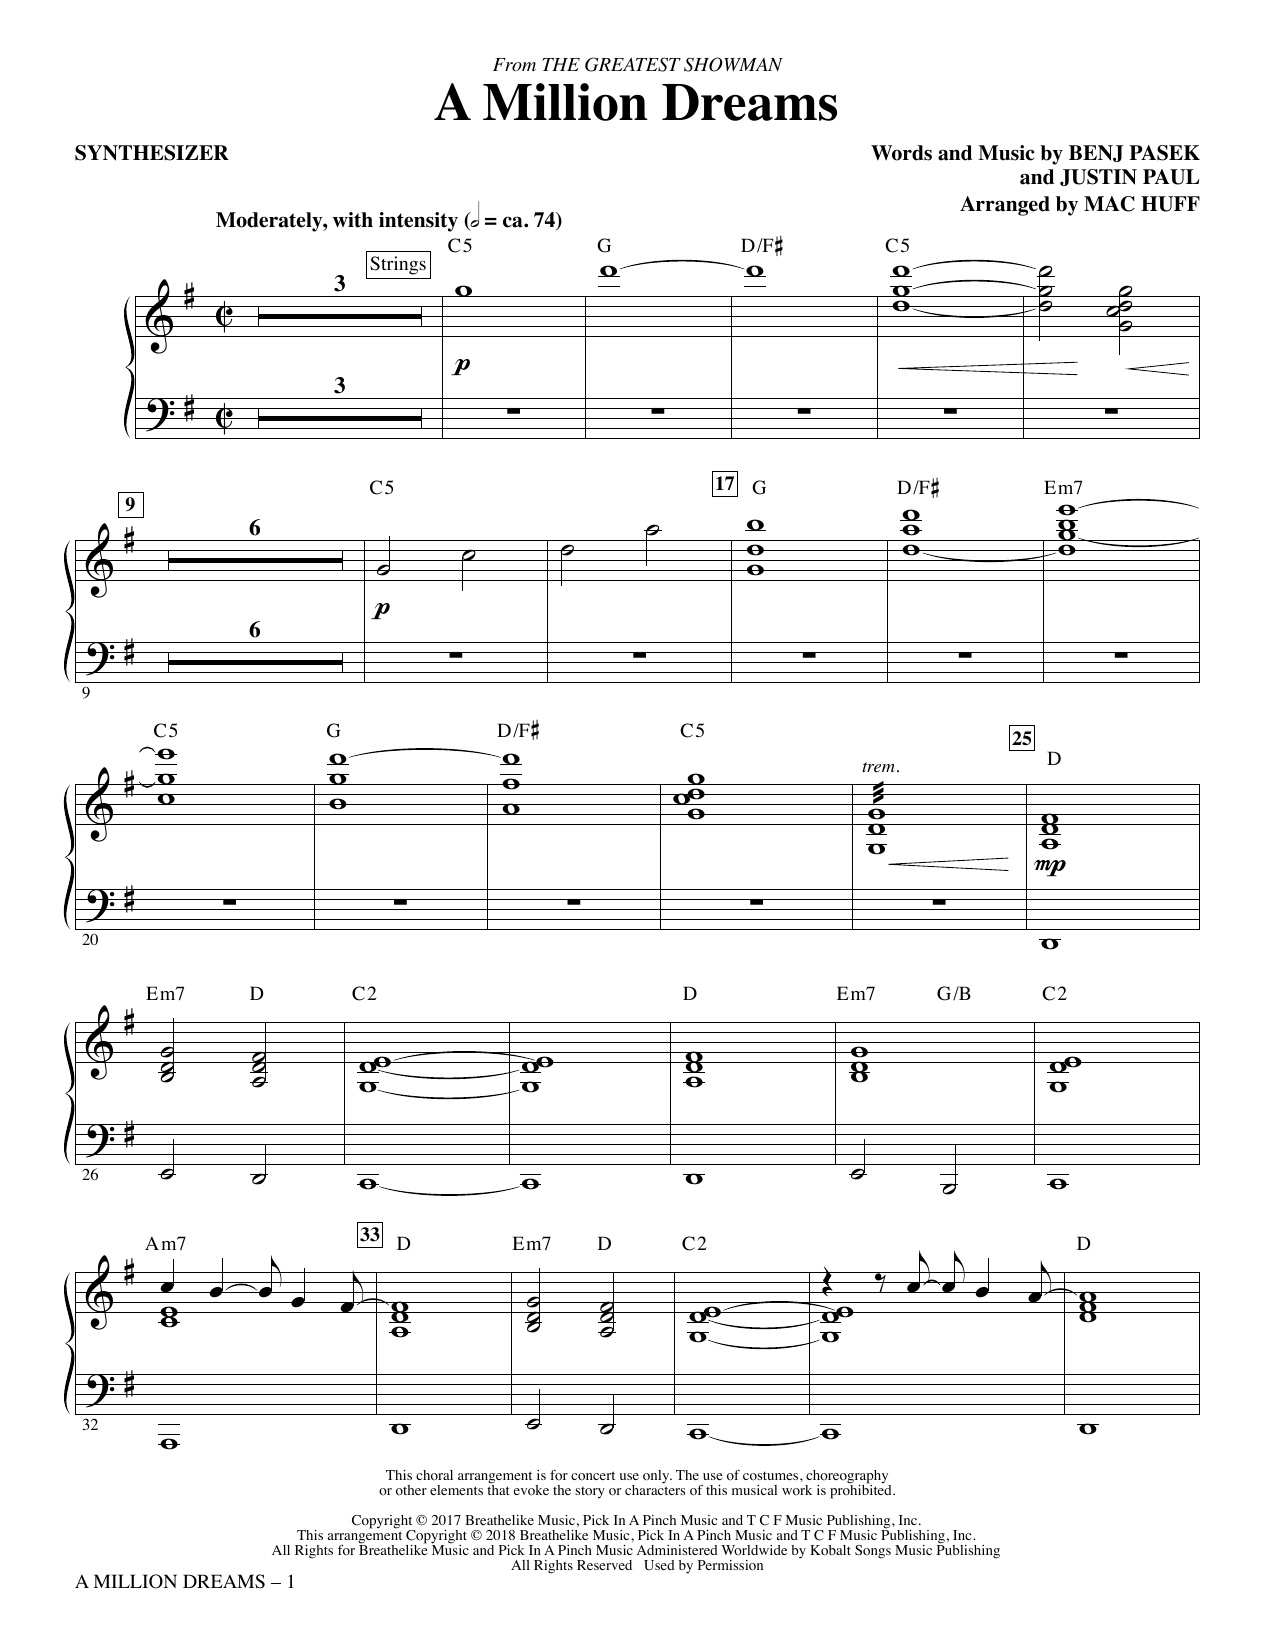 Pasek & Paul A Million Dreams (from The Greatest Showman) (arr. Mac Huff) - Synthesizer sheet music notes and chords. Download Printable PDF.